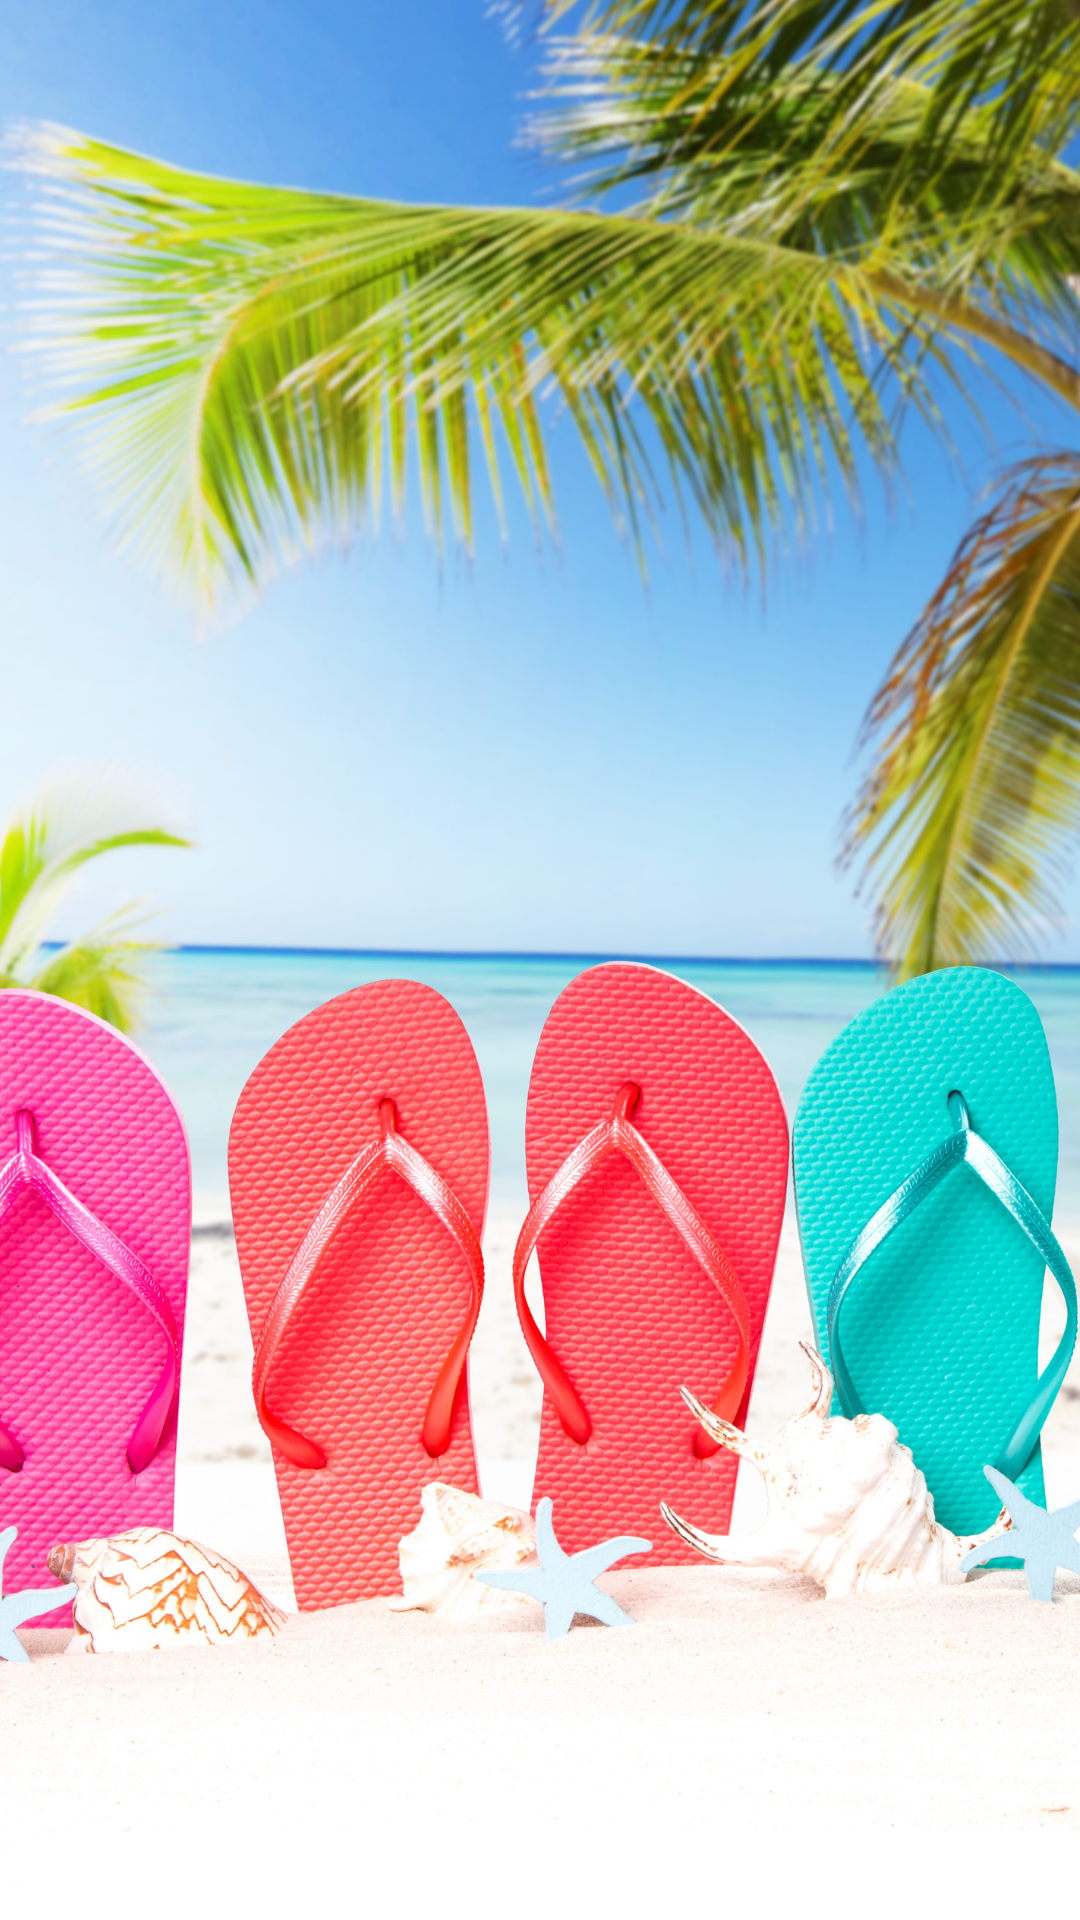 Flip flops in sand at the beach